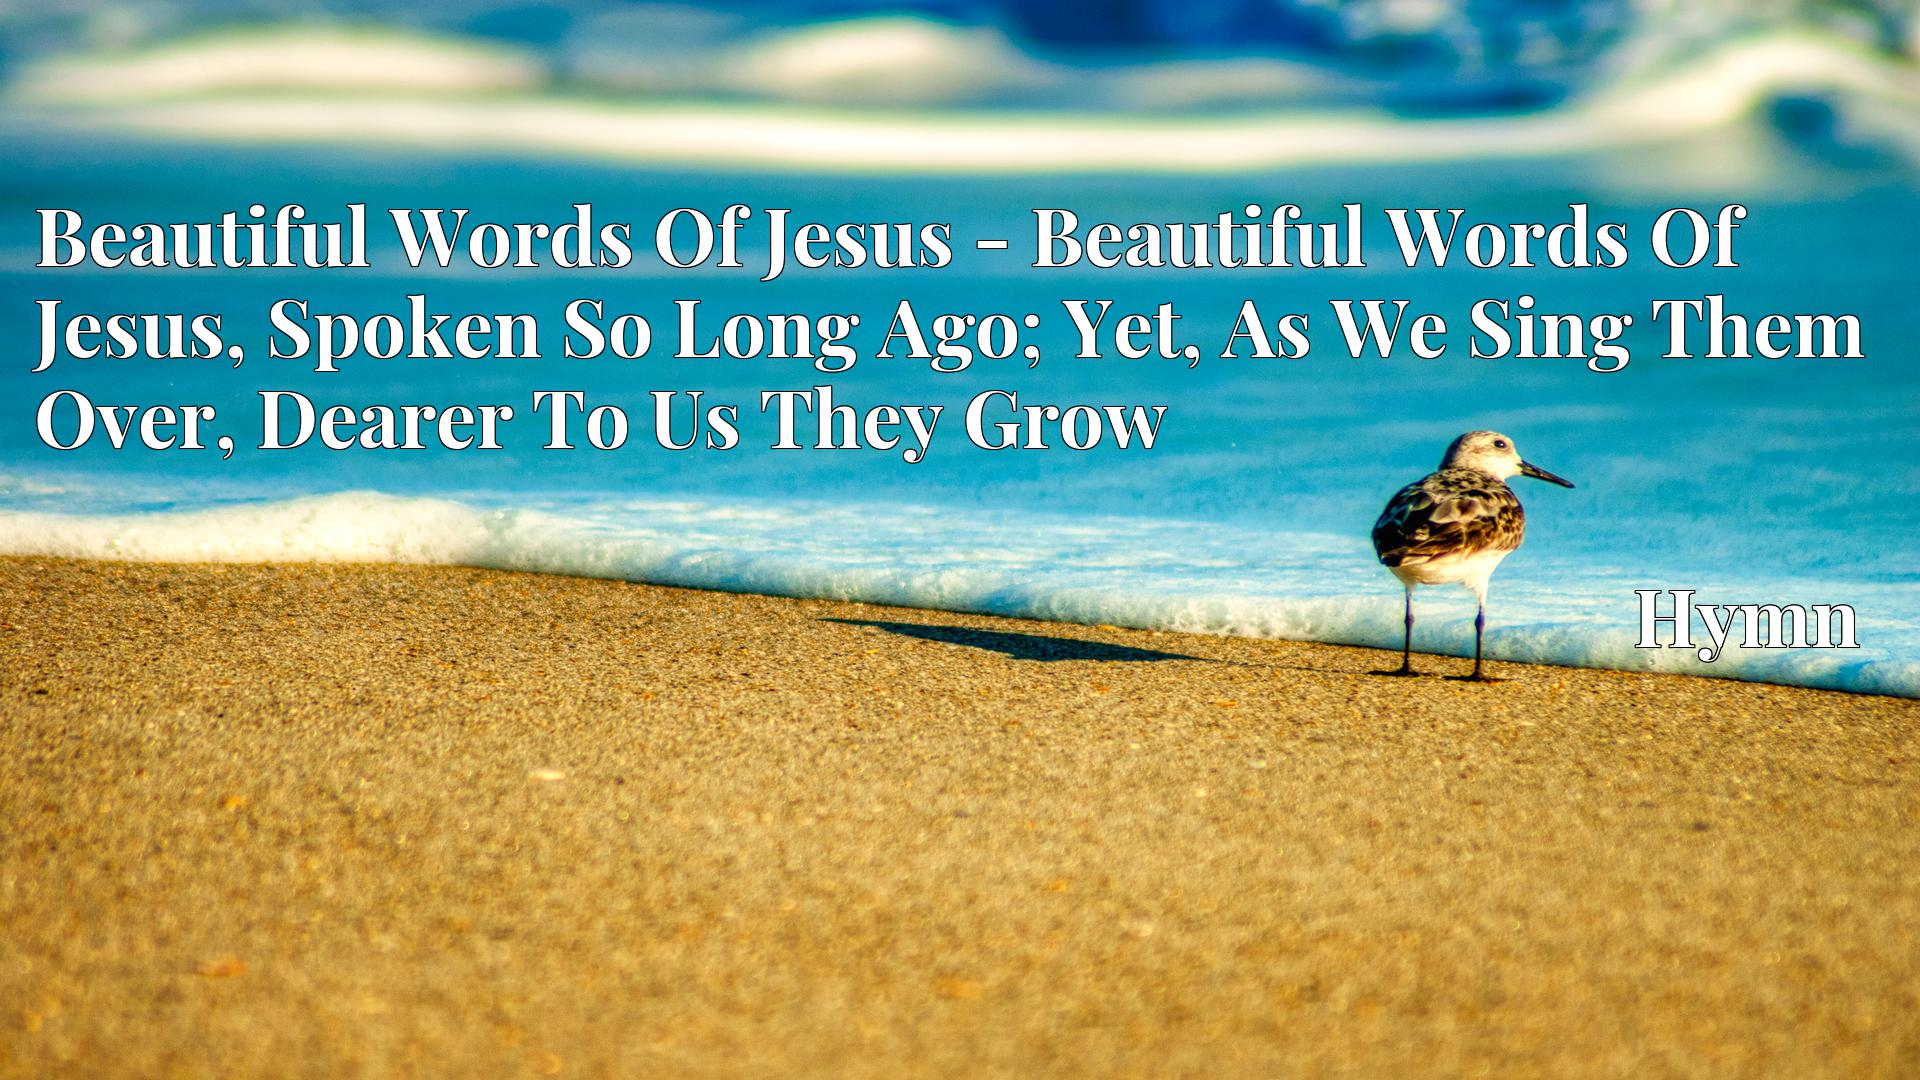 Beautiful Words Of Jesus - Beautiful Words Of Jesus, Spoken So Long Ago; Yet, As We Sing Them Over, Dearer To Us They Grow Hymn